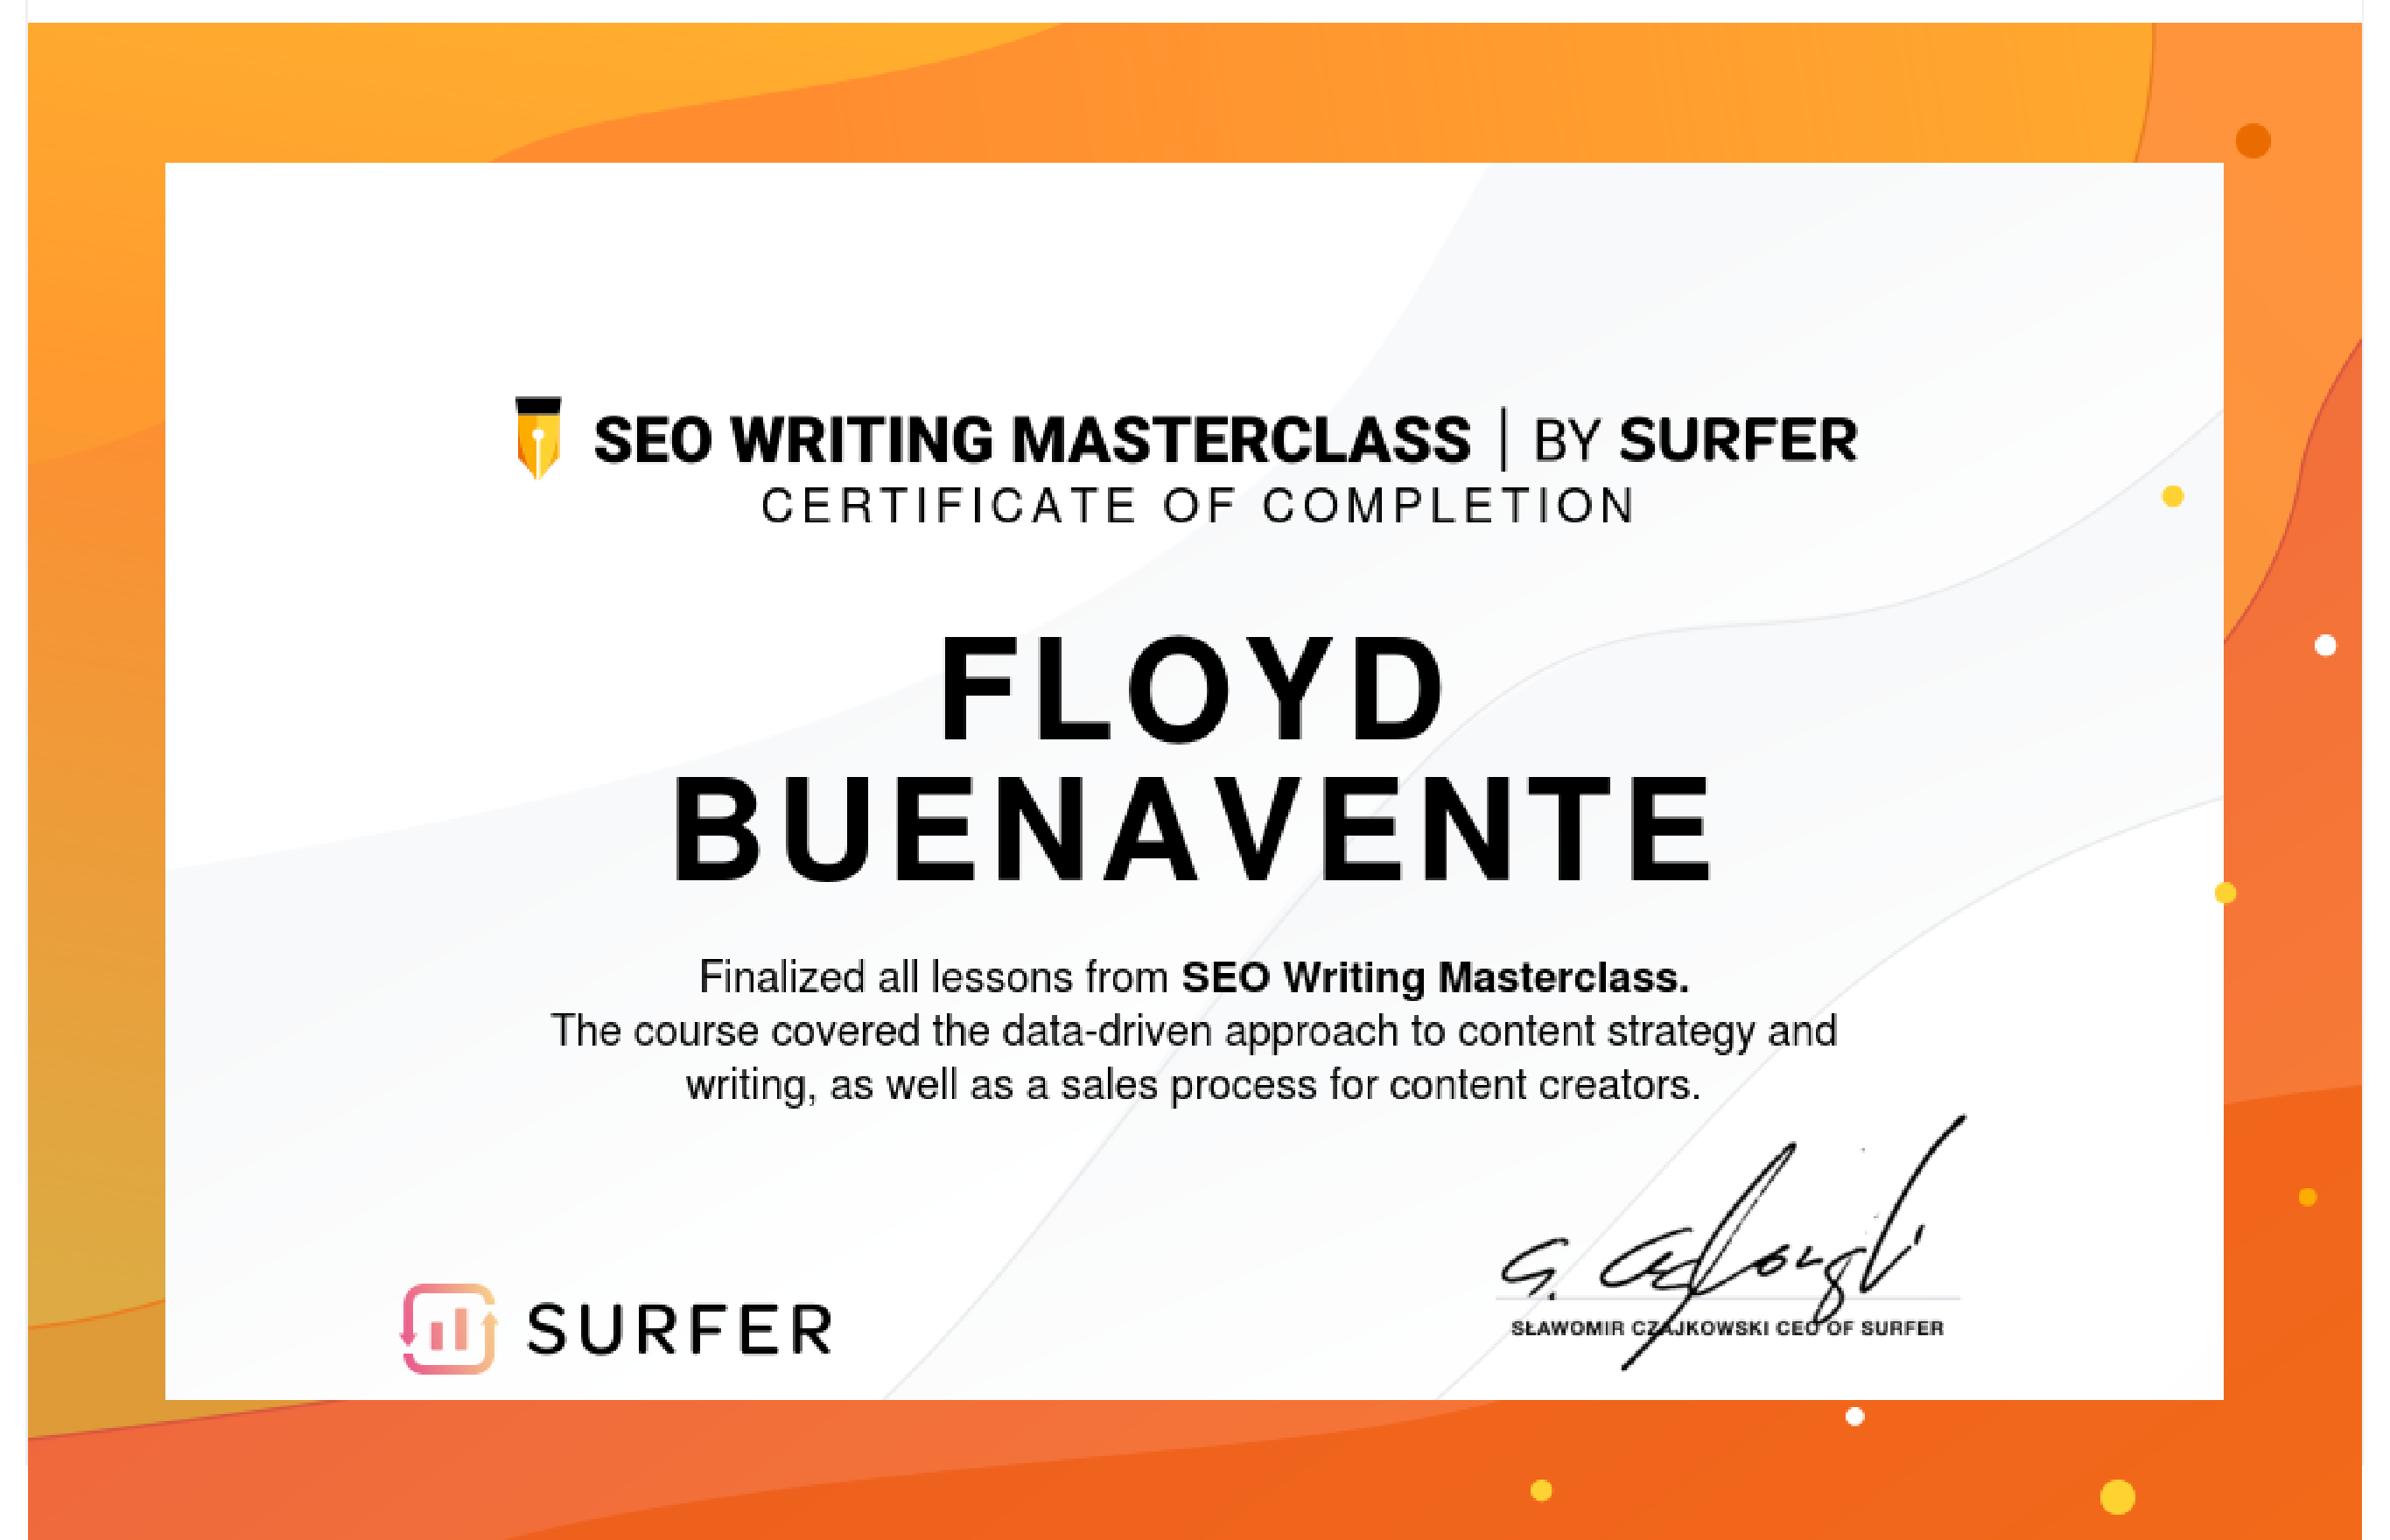 certificate of completion for seo writing masterclass